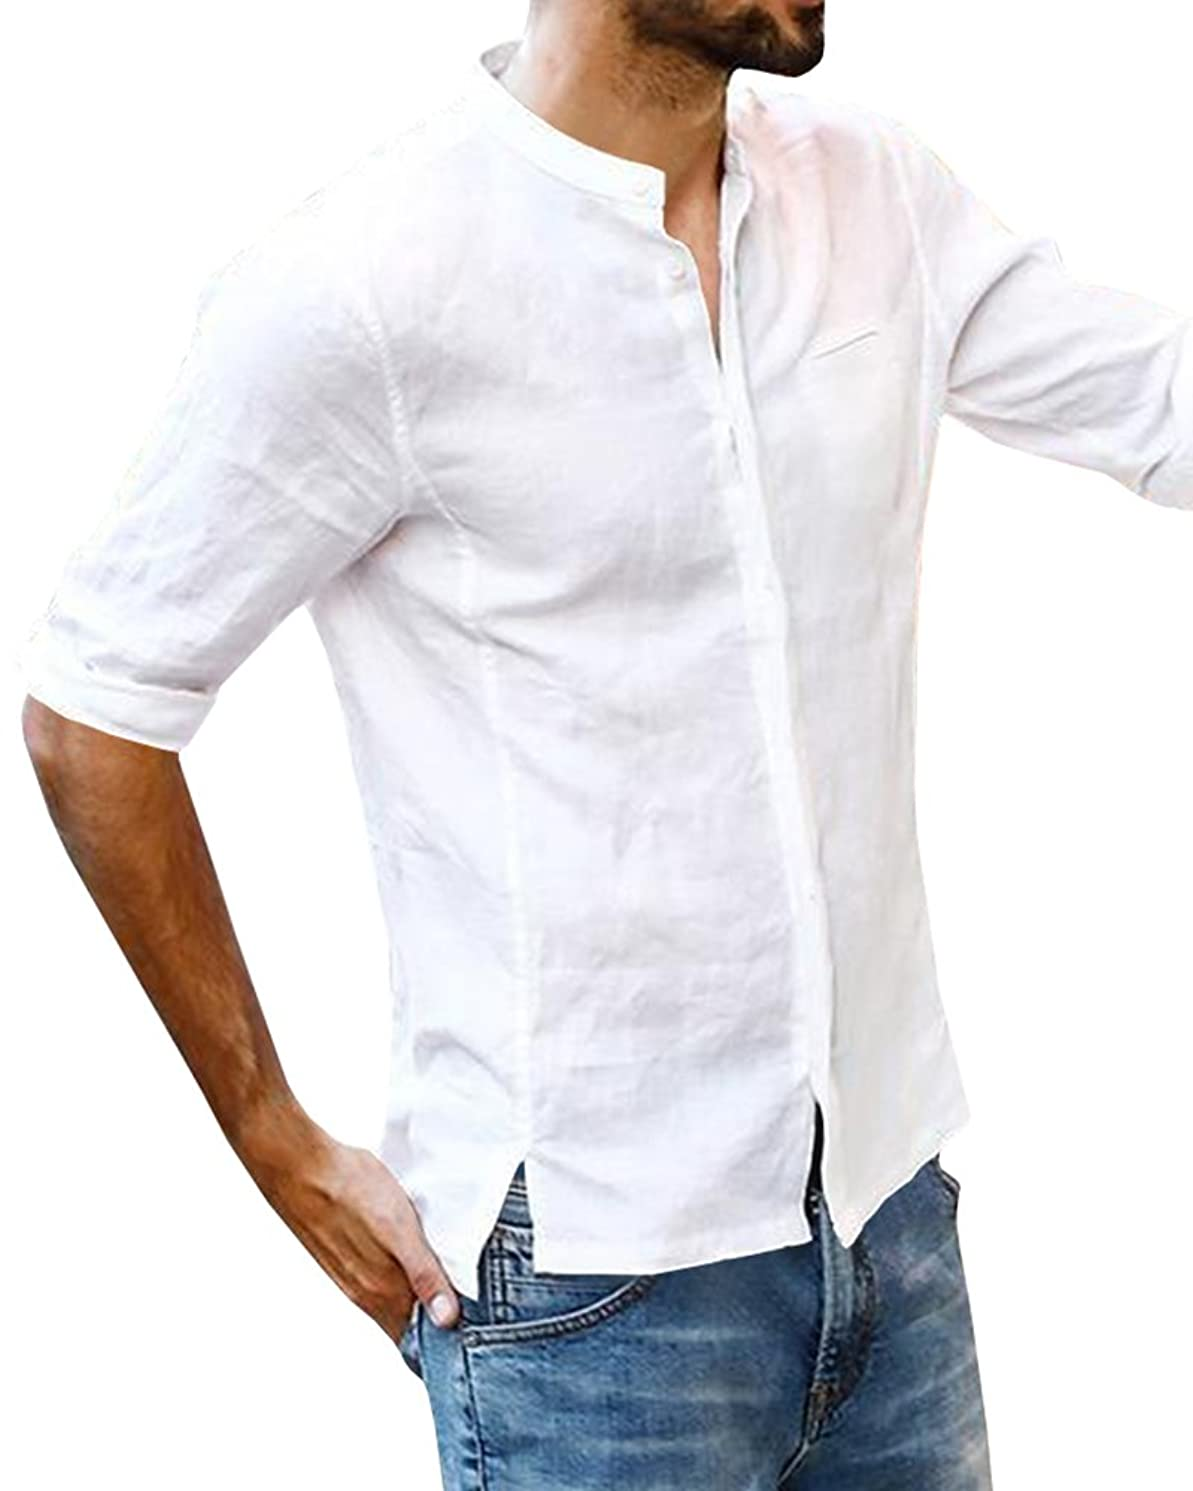 Beotyshow Mens 3/4 Short Sleeve Henley Shirts Banded Collar Button Down Shirt Linen Casual Shirts for Men